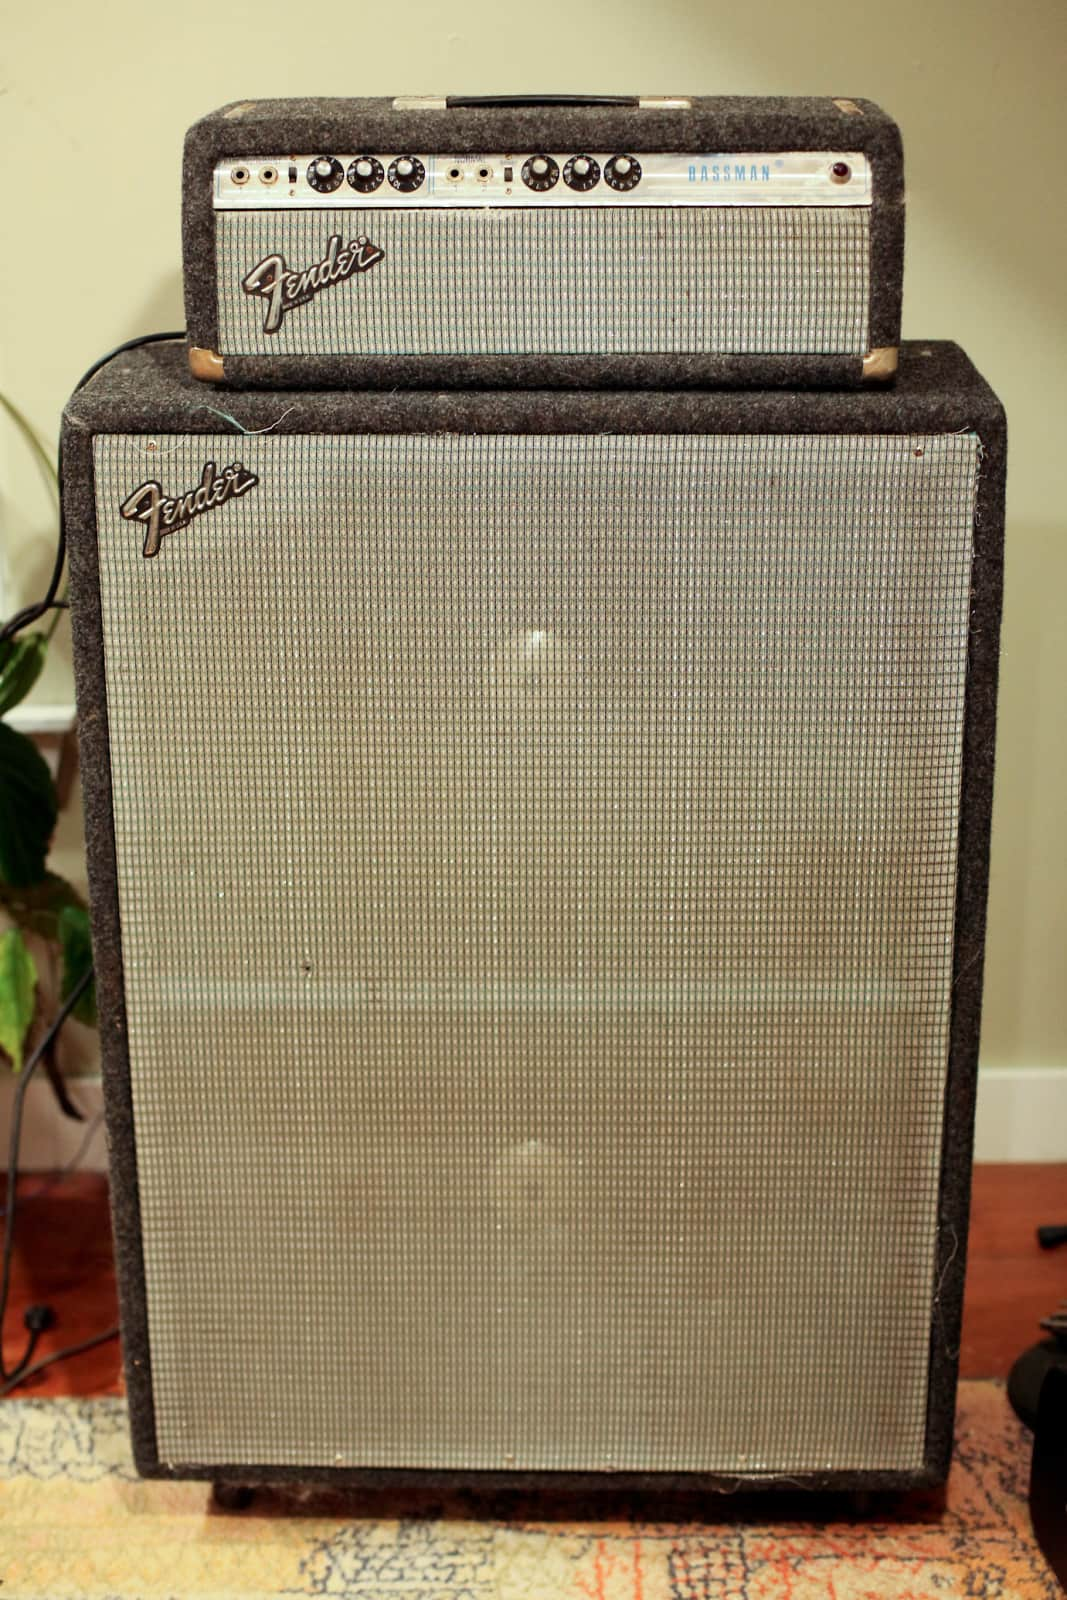 1968 Fender Bassman Head And Cabinet Reverb